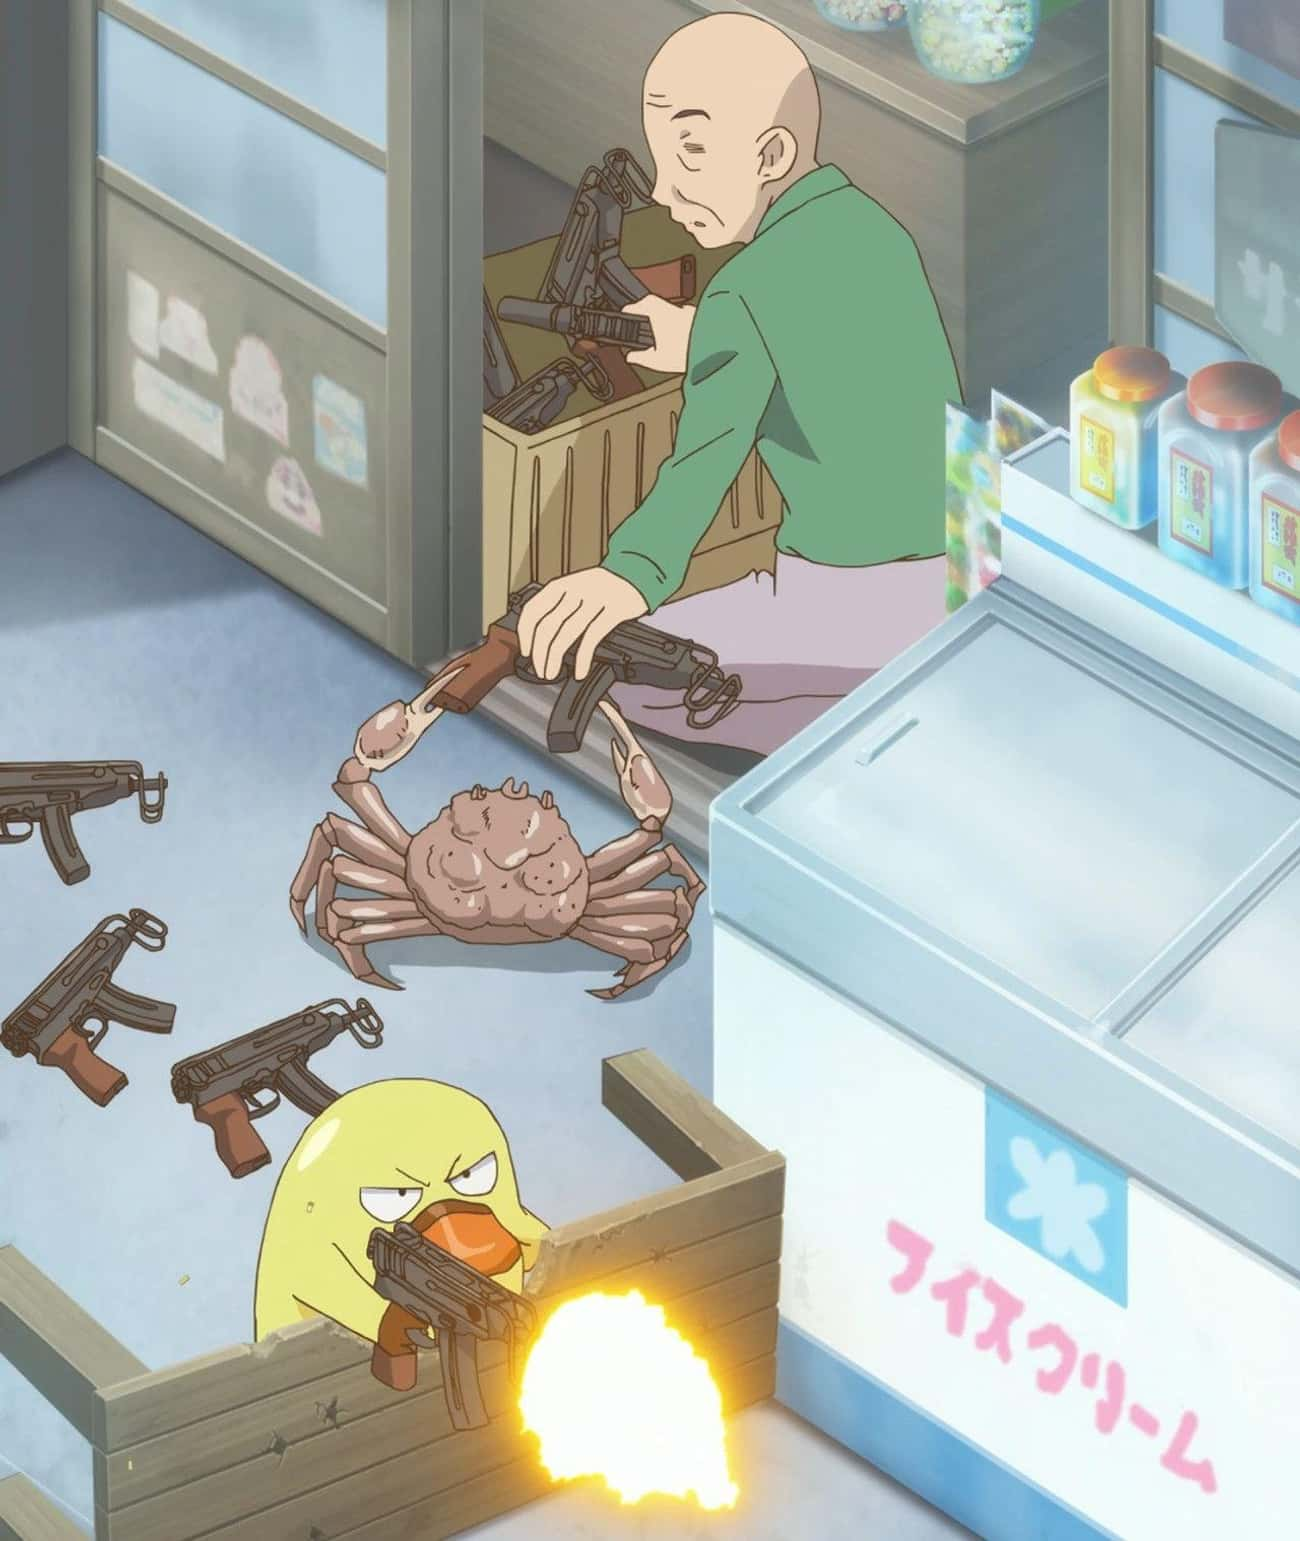 To Your Battle Stations is listed (or ranked) 1 on the list 30 Hilarious Anime Scenes That Make Absolutely No Sense Without Context